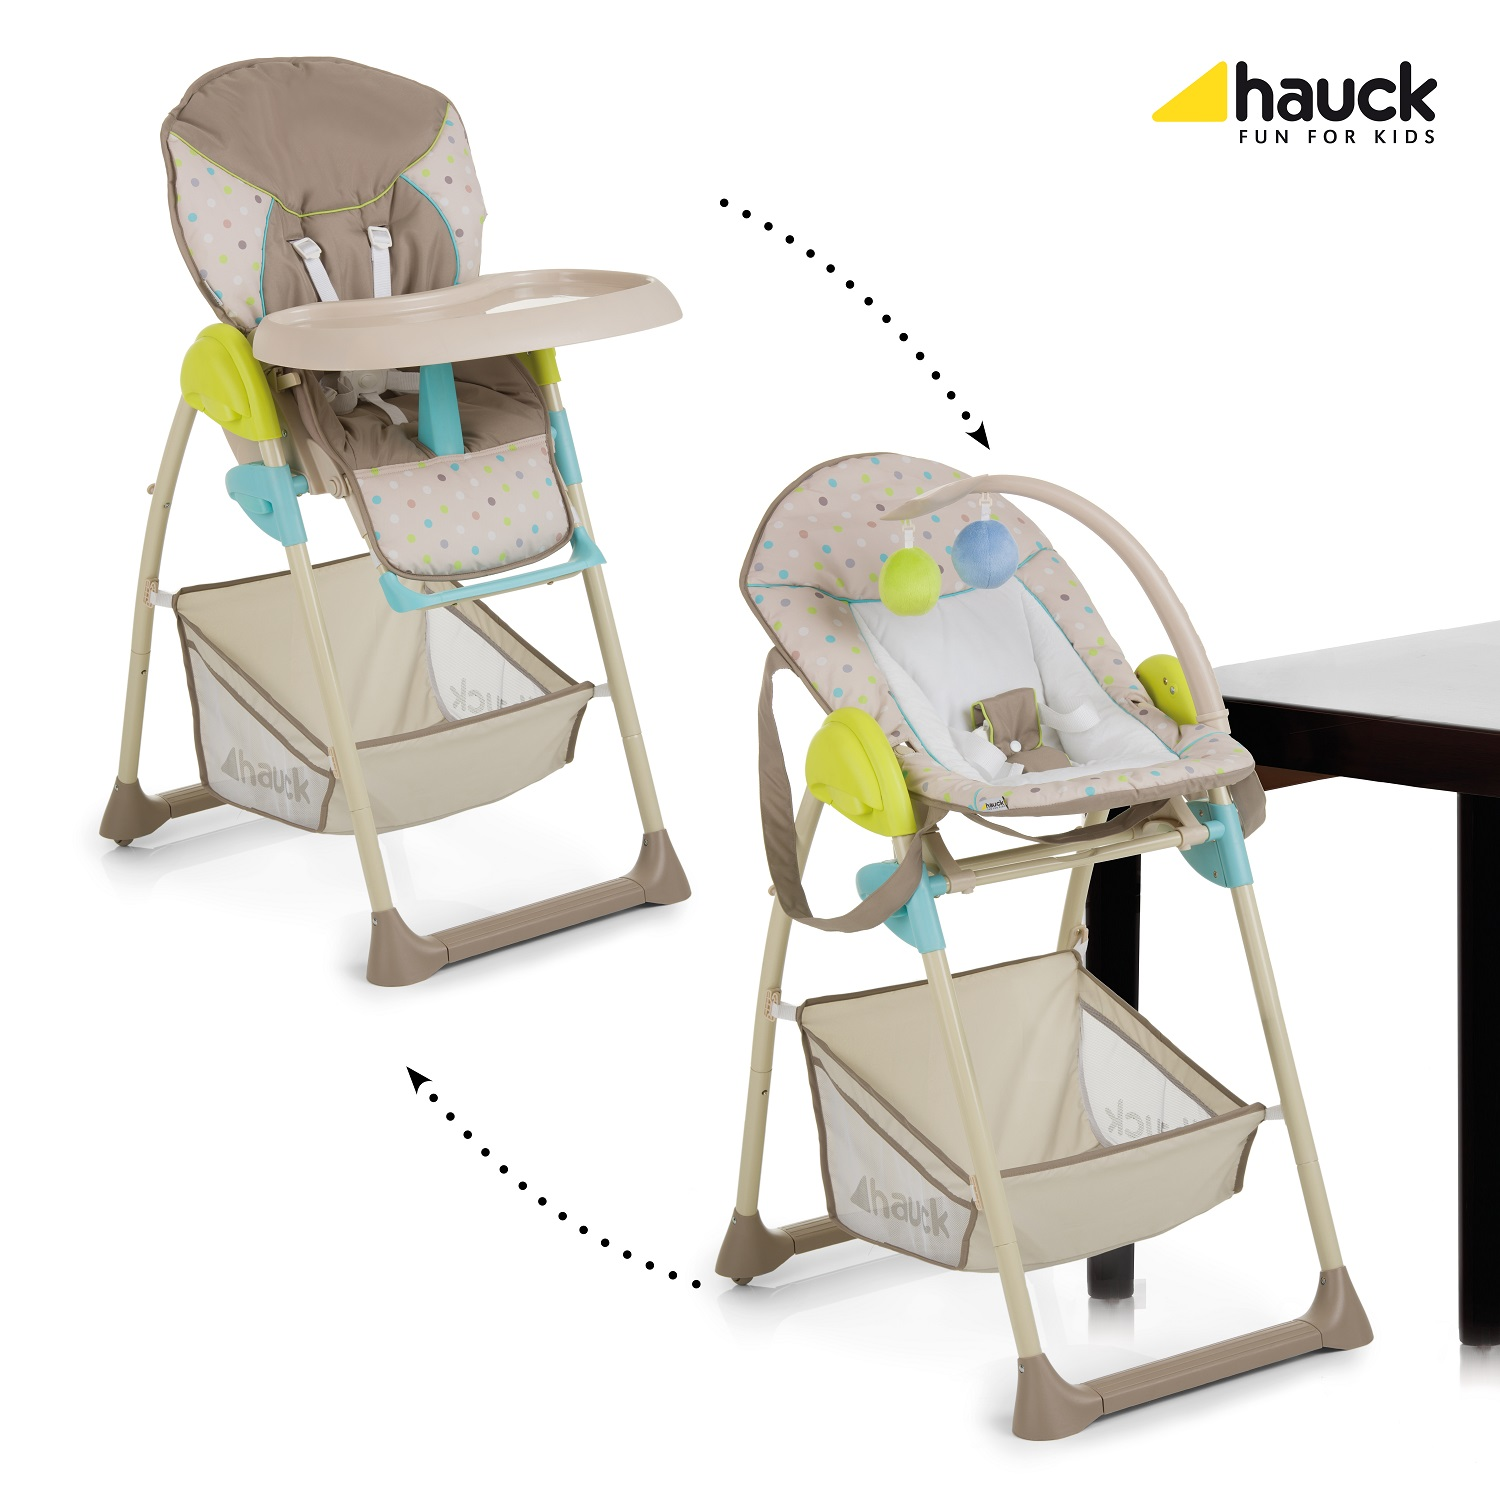 hauck high chair sit 39 n relax buy at kidsroom living sleeping. Black Bedroom Furniture Sets. Home Design Ideas